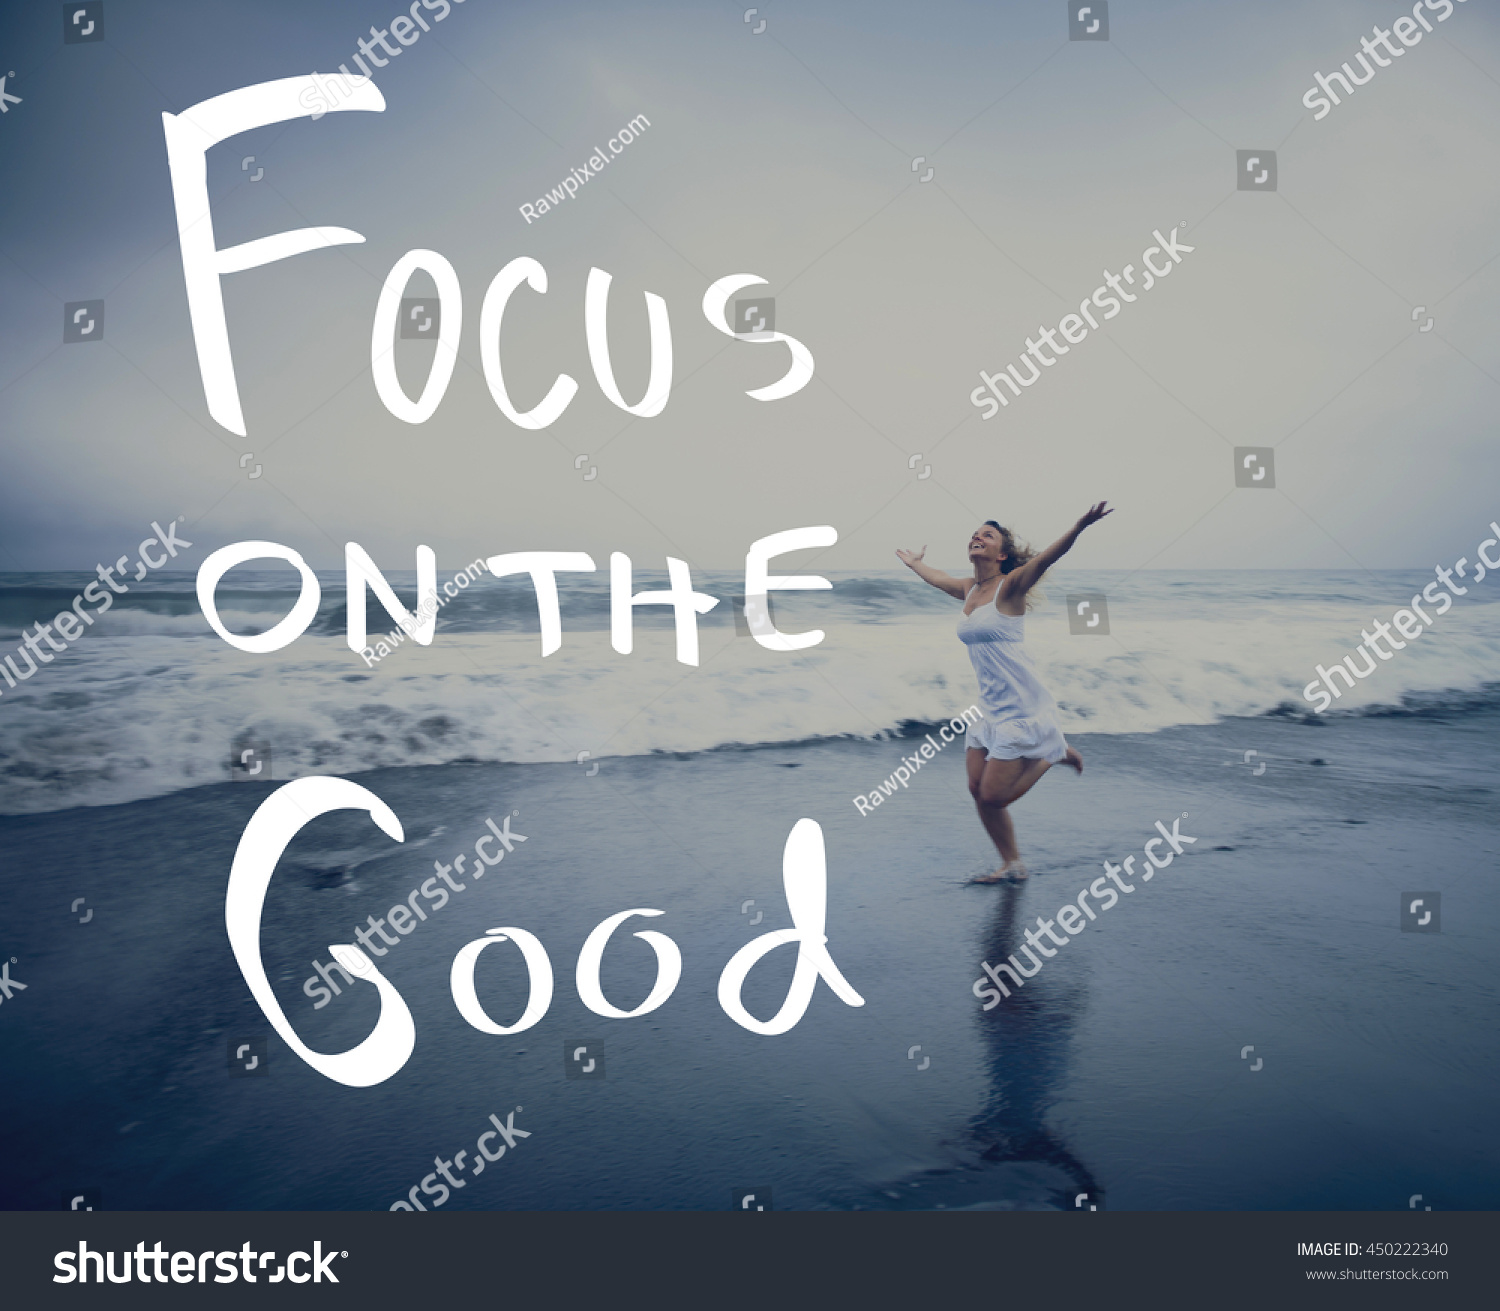 Lifestyle Positive Thoughts Mind Life Concept People Stock Image 450222340